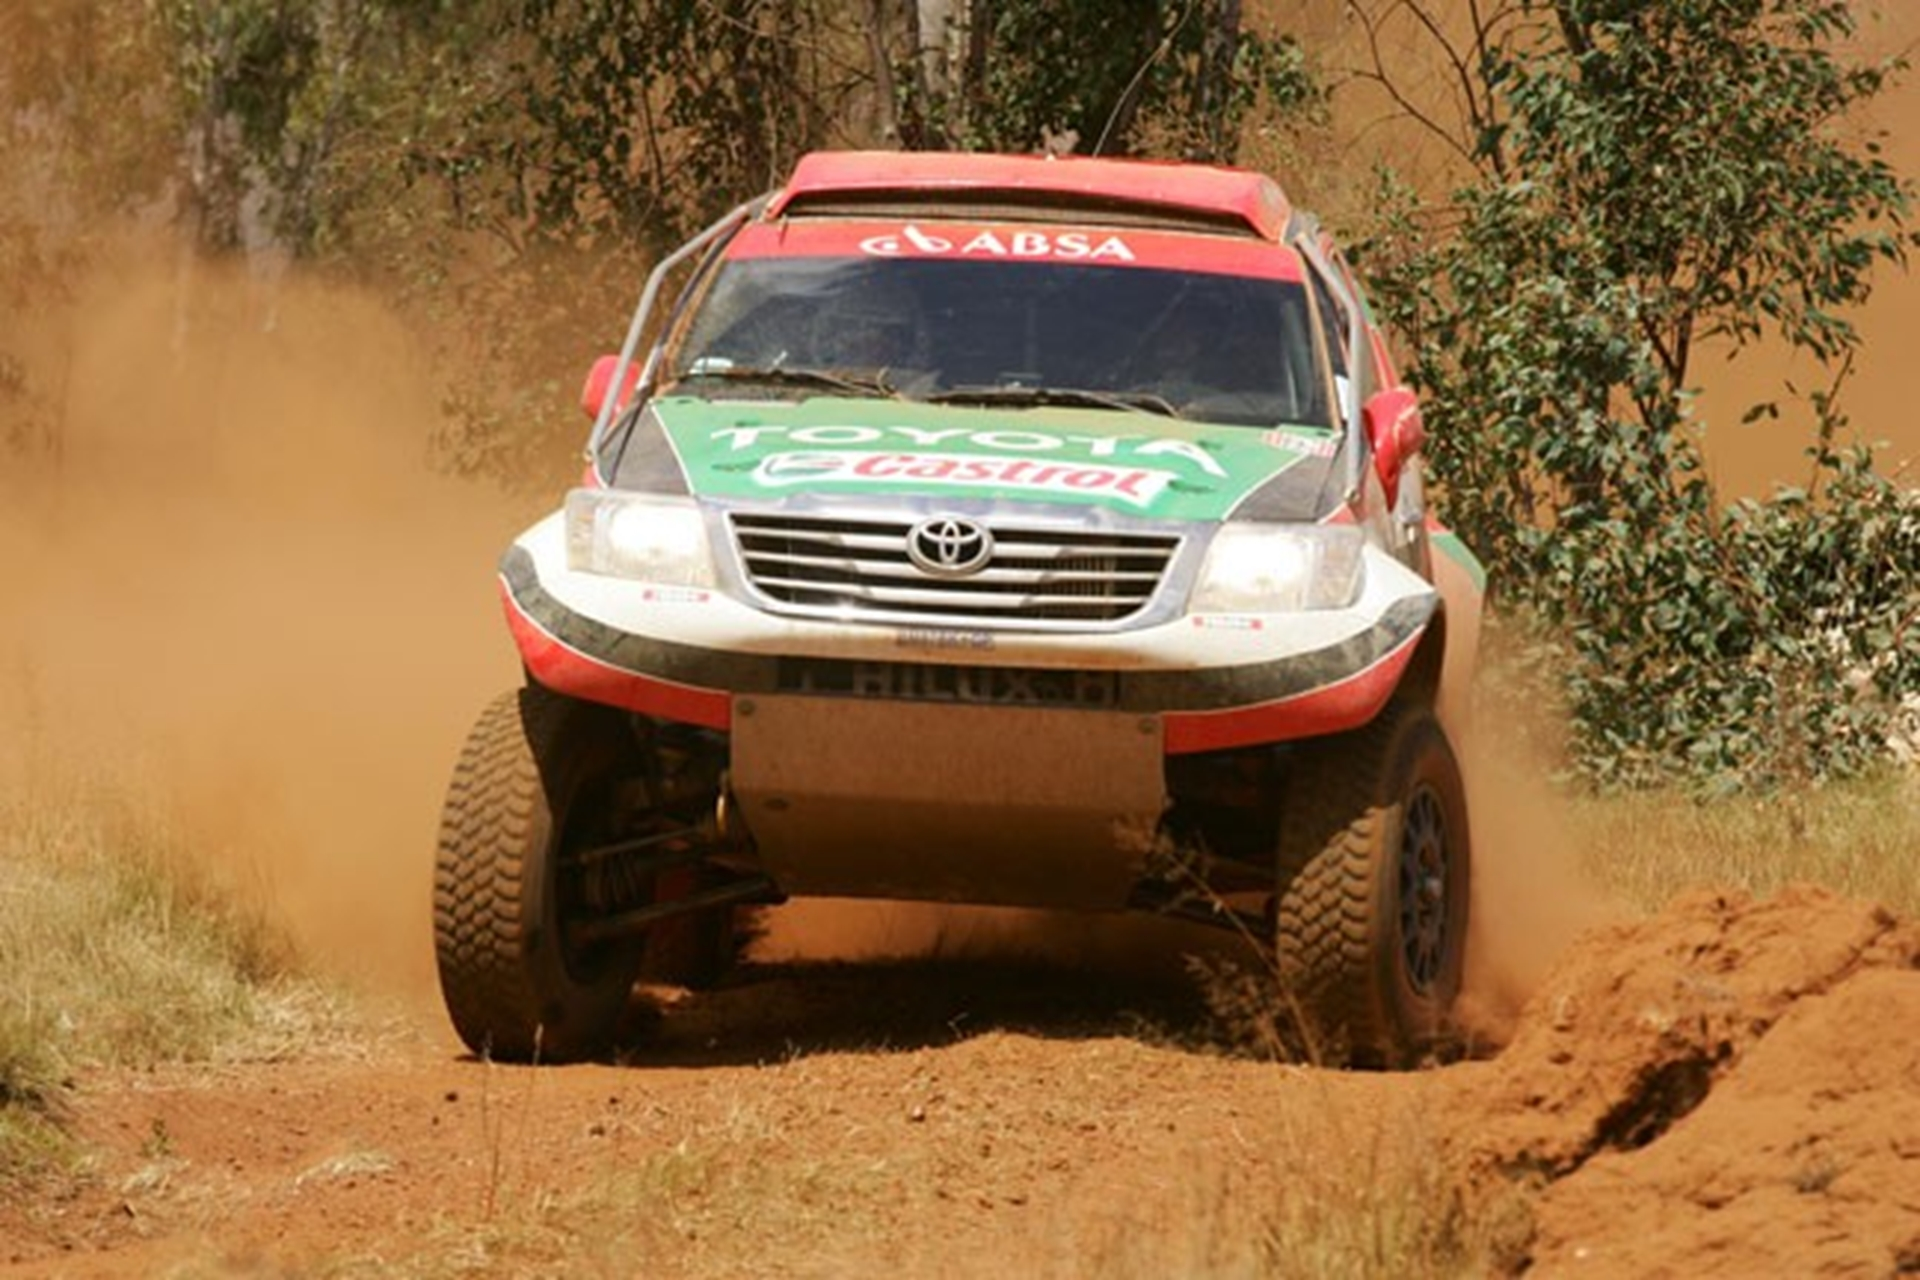 Toyota ABSA off-road